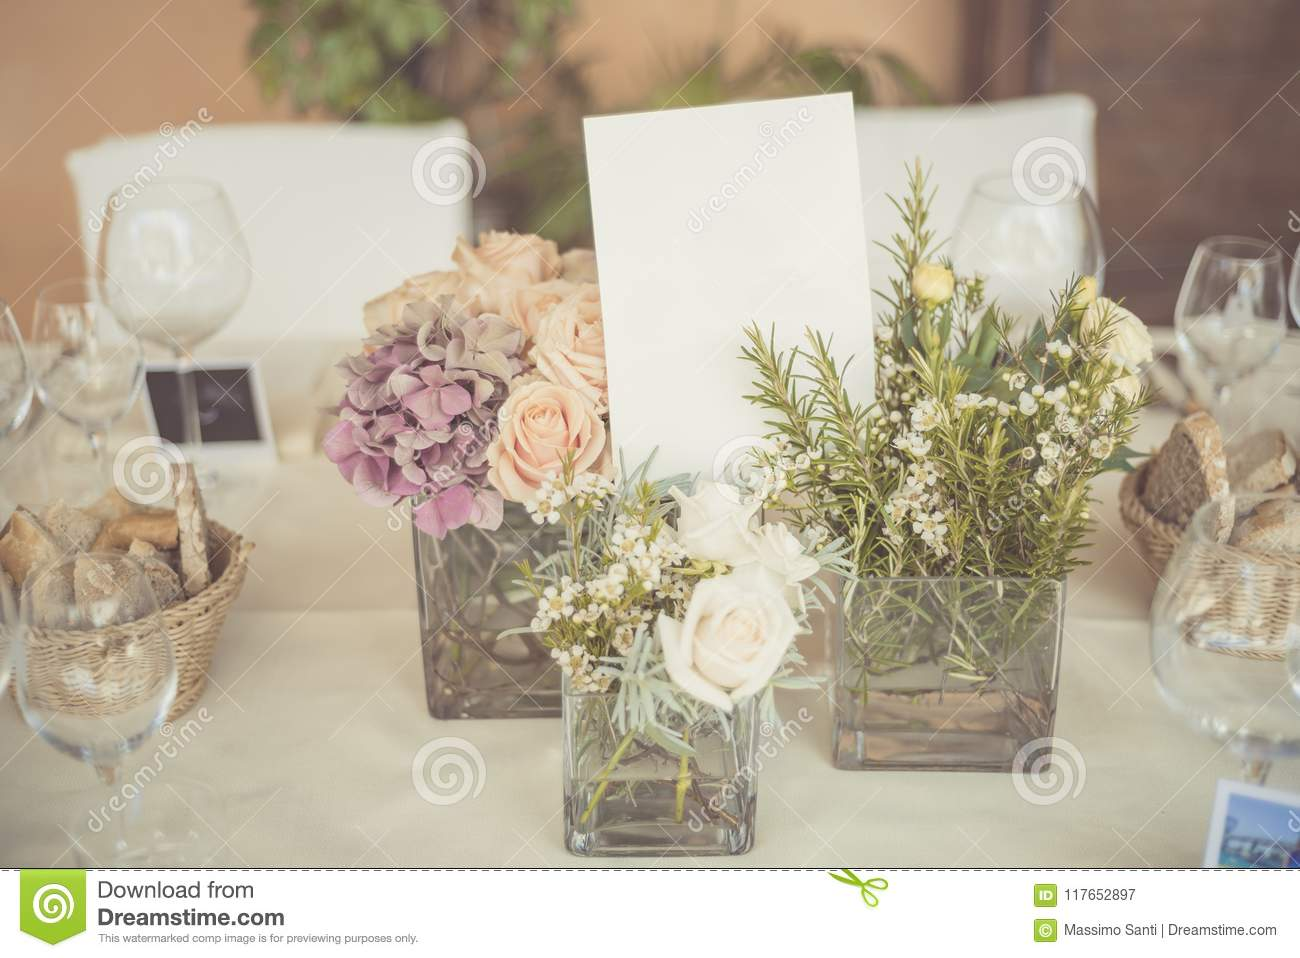 Wedding Table Setting In Rustic Style. Stock Image - Image of ...